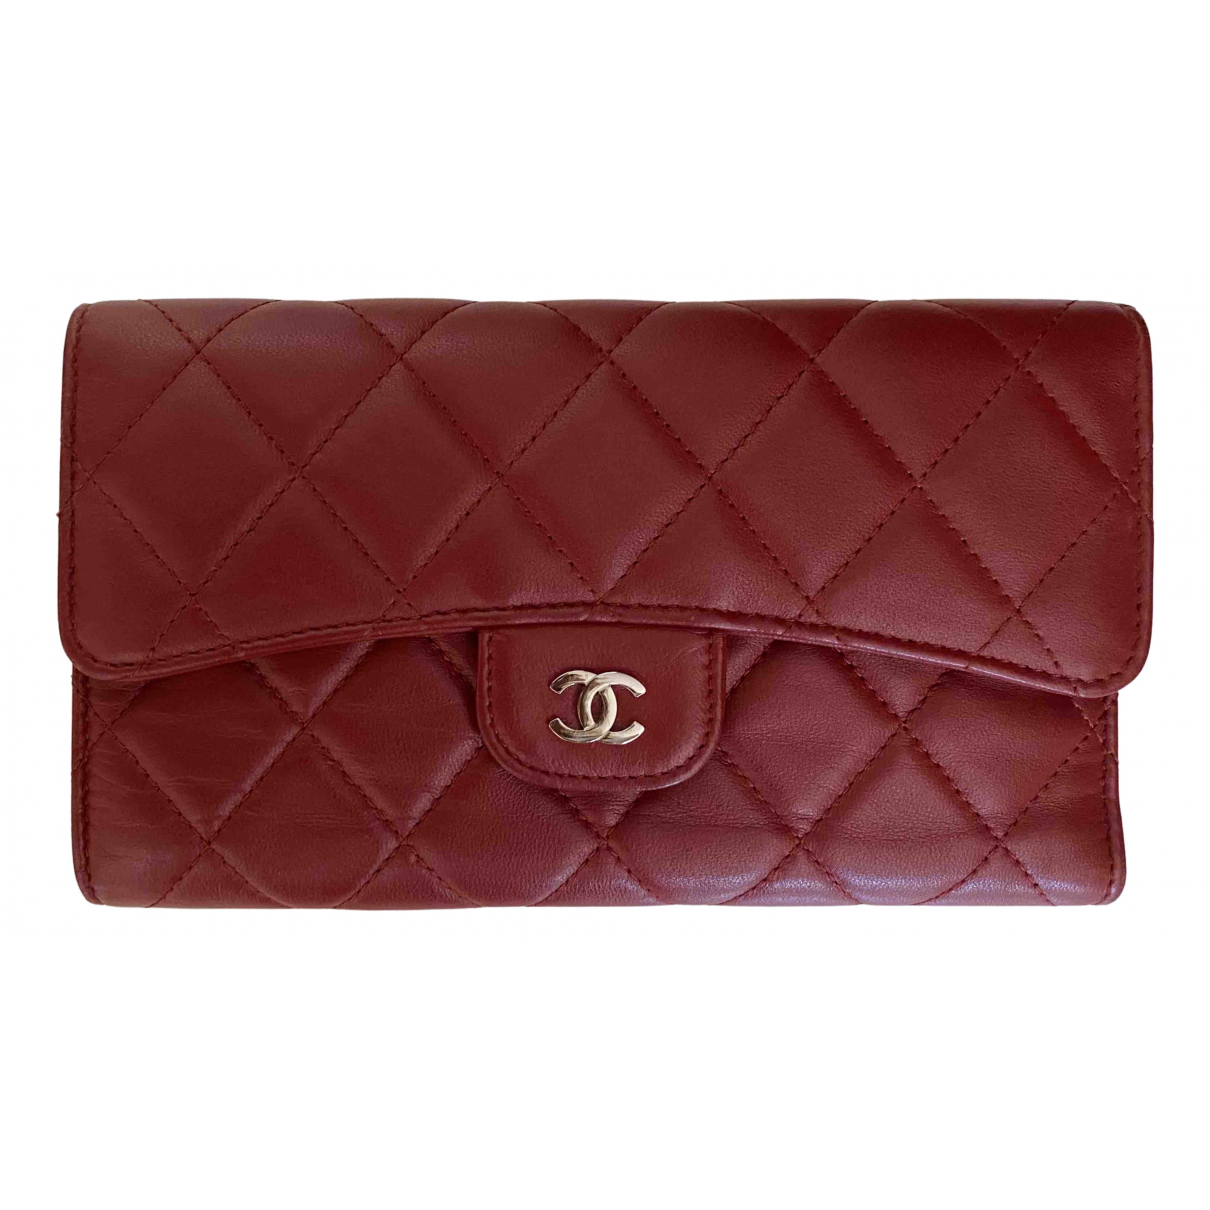 Chanel Timeless/Classique Red Leather wallet for Women \N